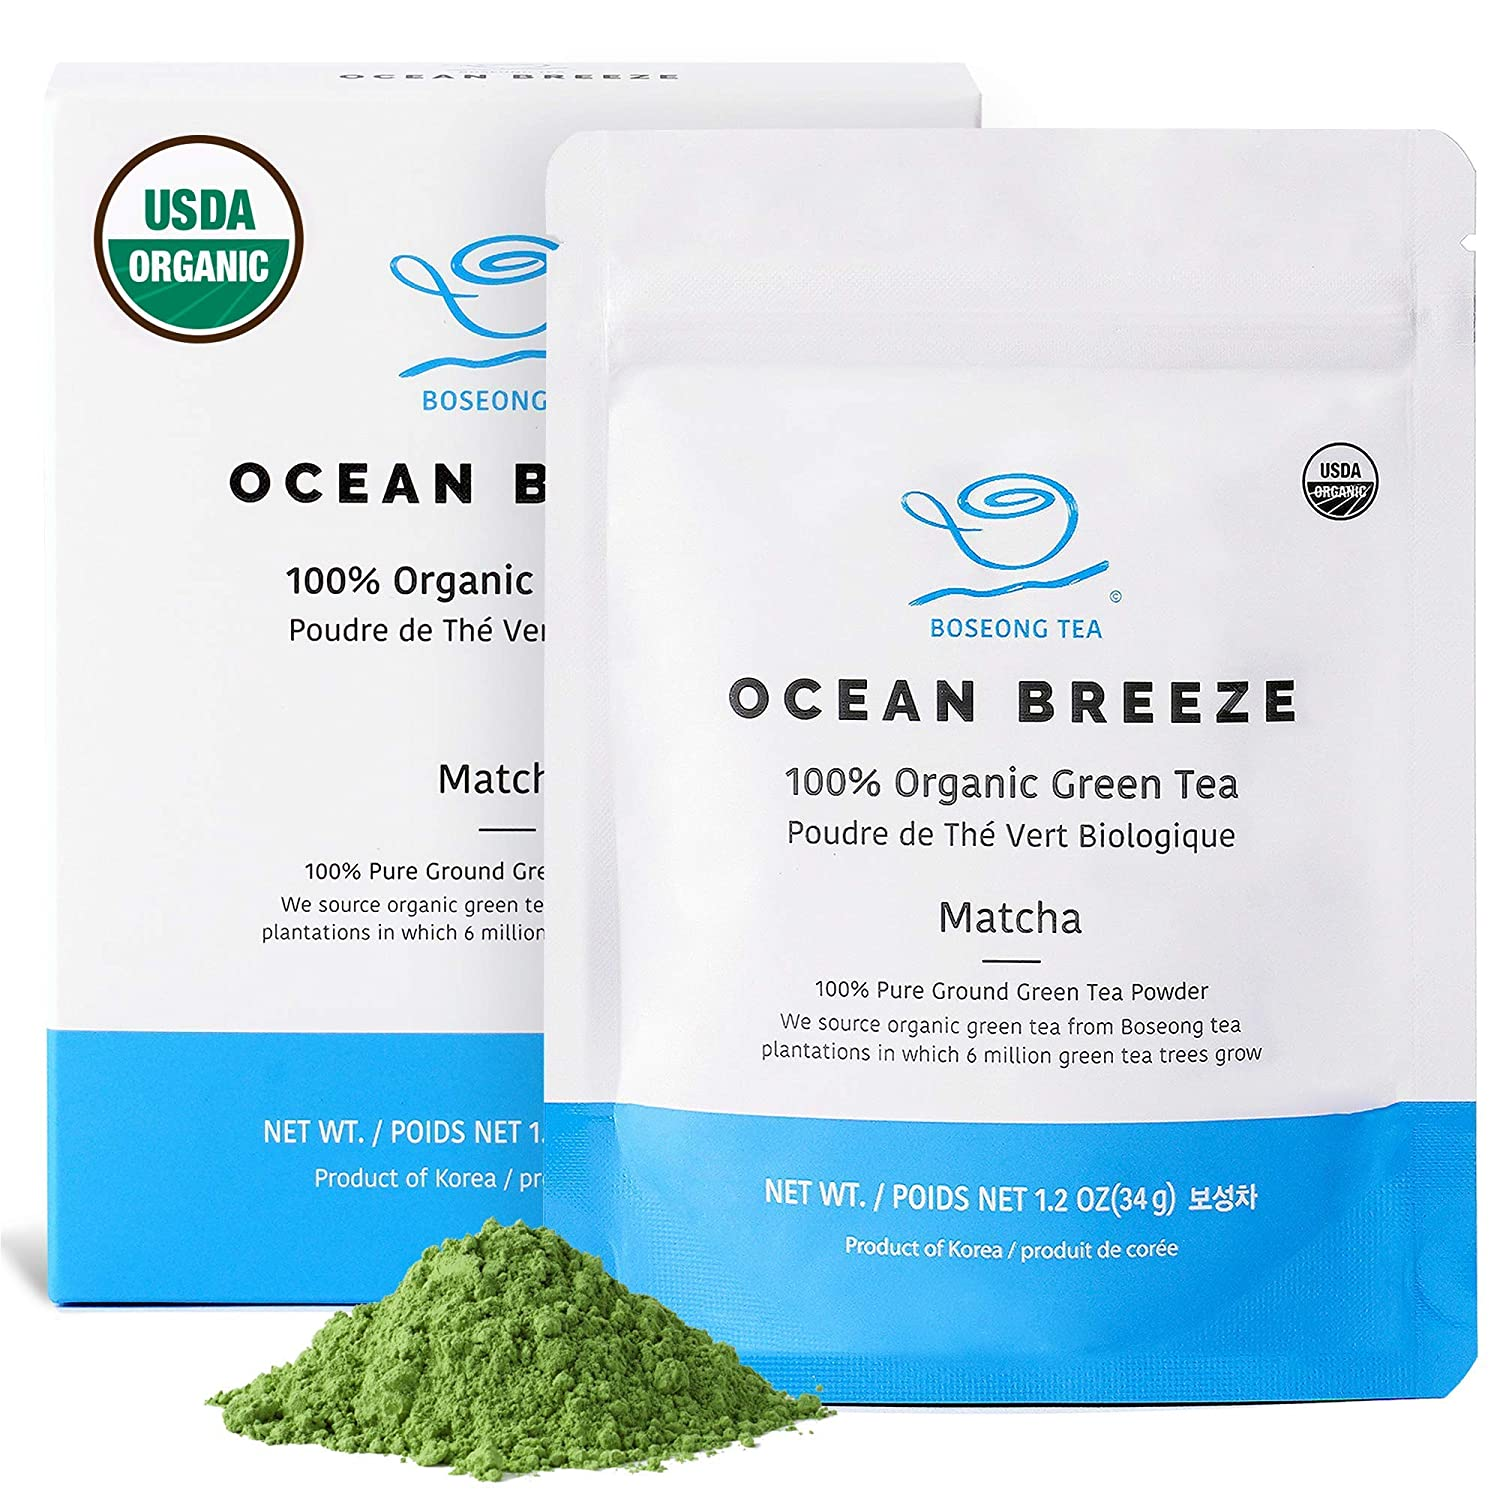 Organic Matcha Green Tea Powder 1.2 oz - Authentic South Korean Origin USDA Organic Non-GMO 100% Pure Hand Picked Vegan Organic Green Tea Korean Food - Superfood